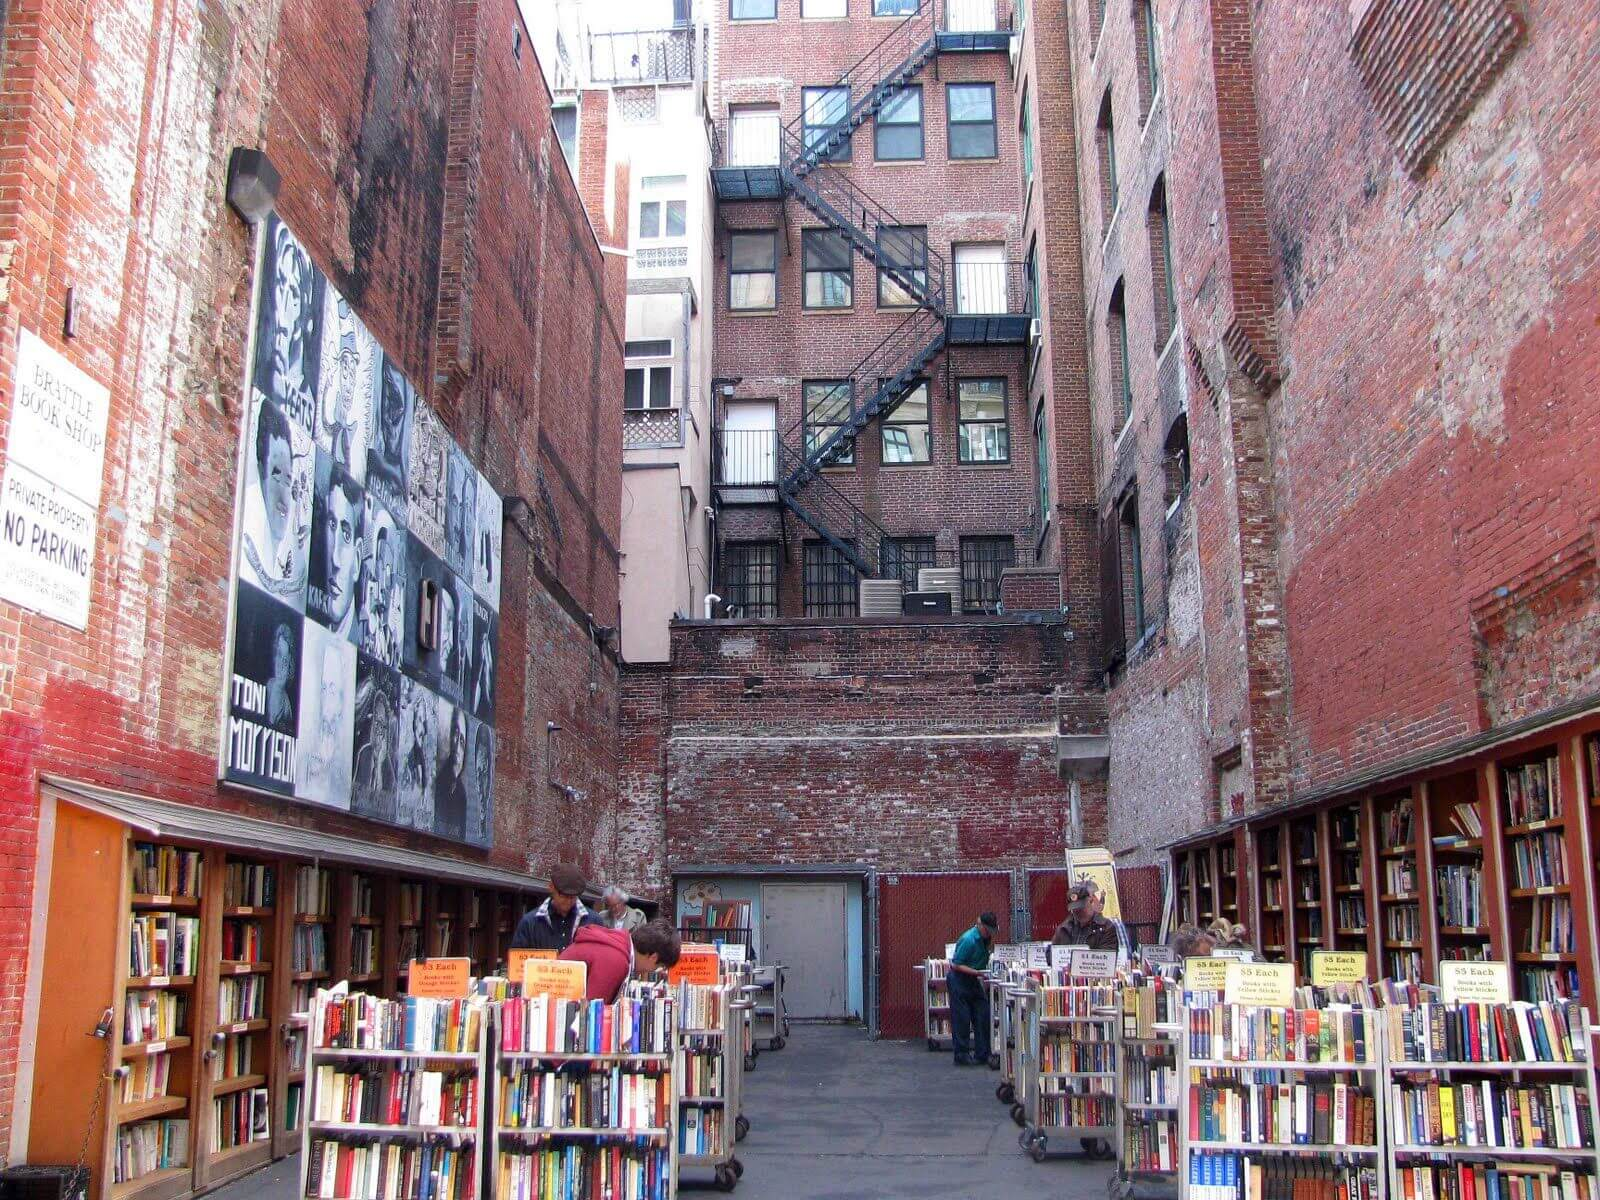 The United States of America Is a Top Destination for Book Lovers